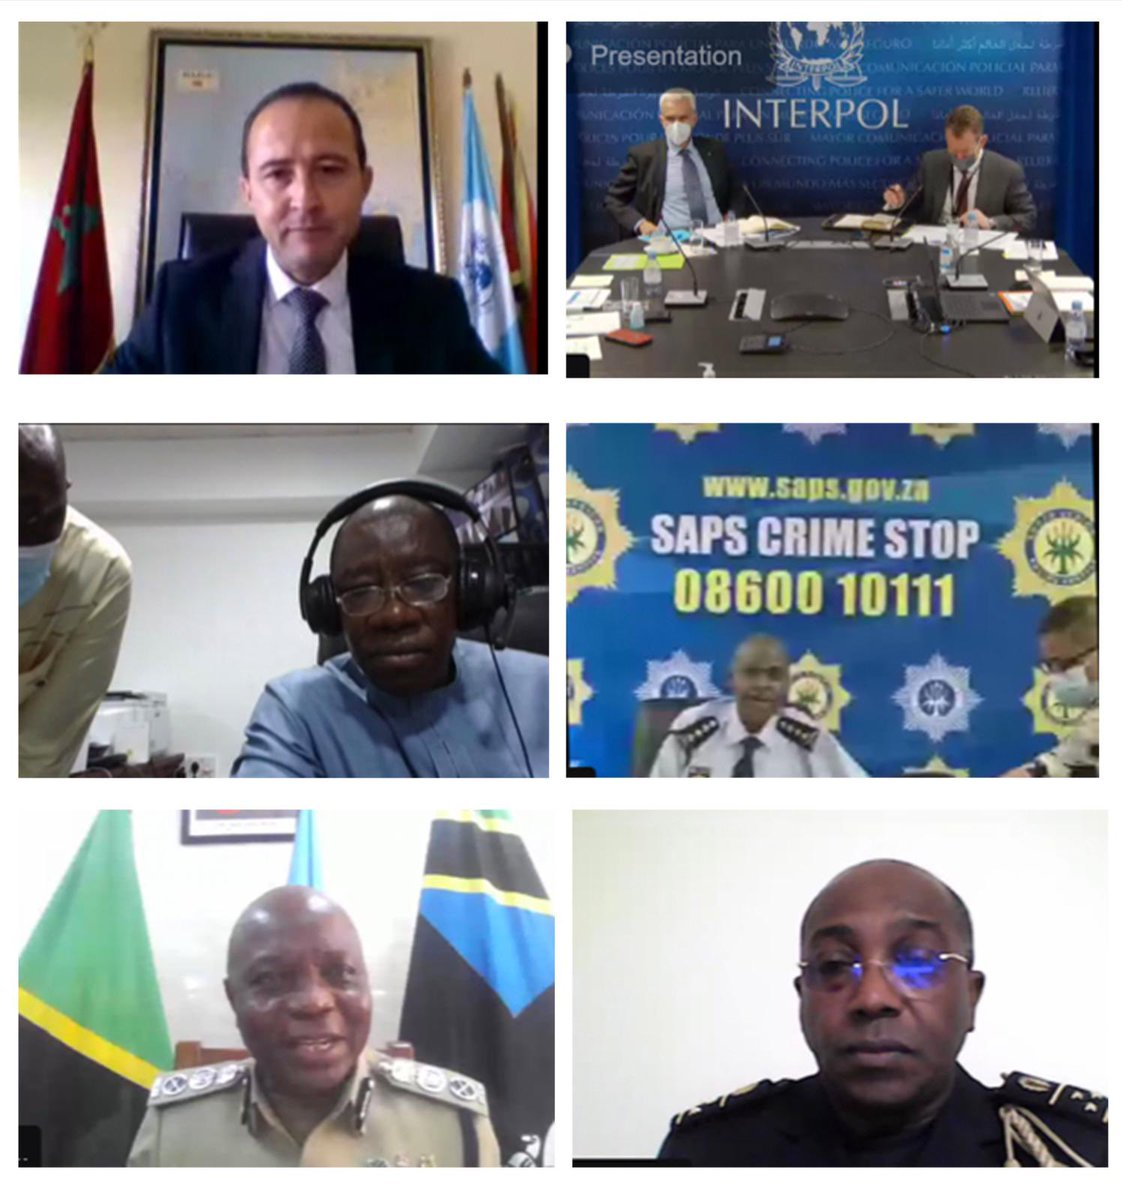 At today's meeting with senior police from 45 African countries, I underlined that curbing violence, countering organized crime and enhancing border security remain at the core of INTERPOL's support to the region, and to the @_AfricanUnion #Agenda2063